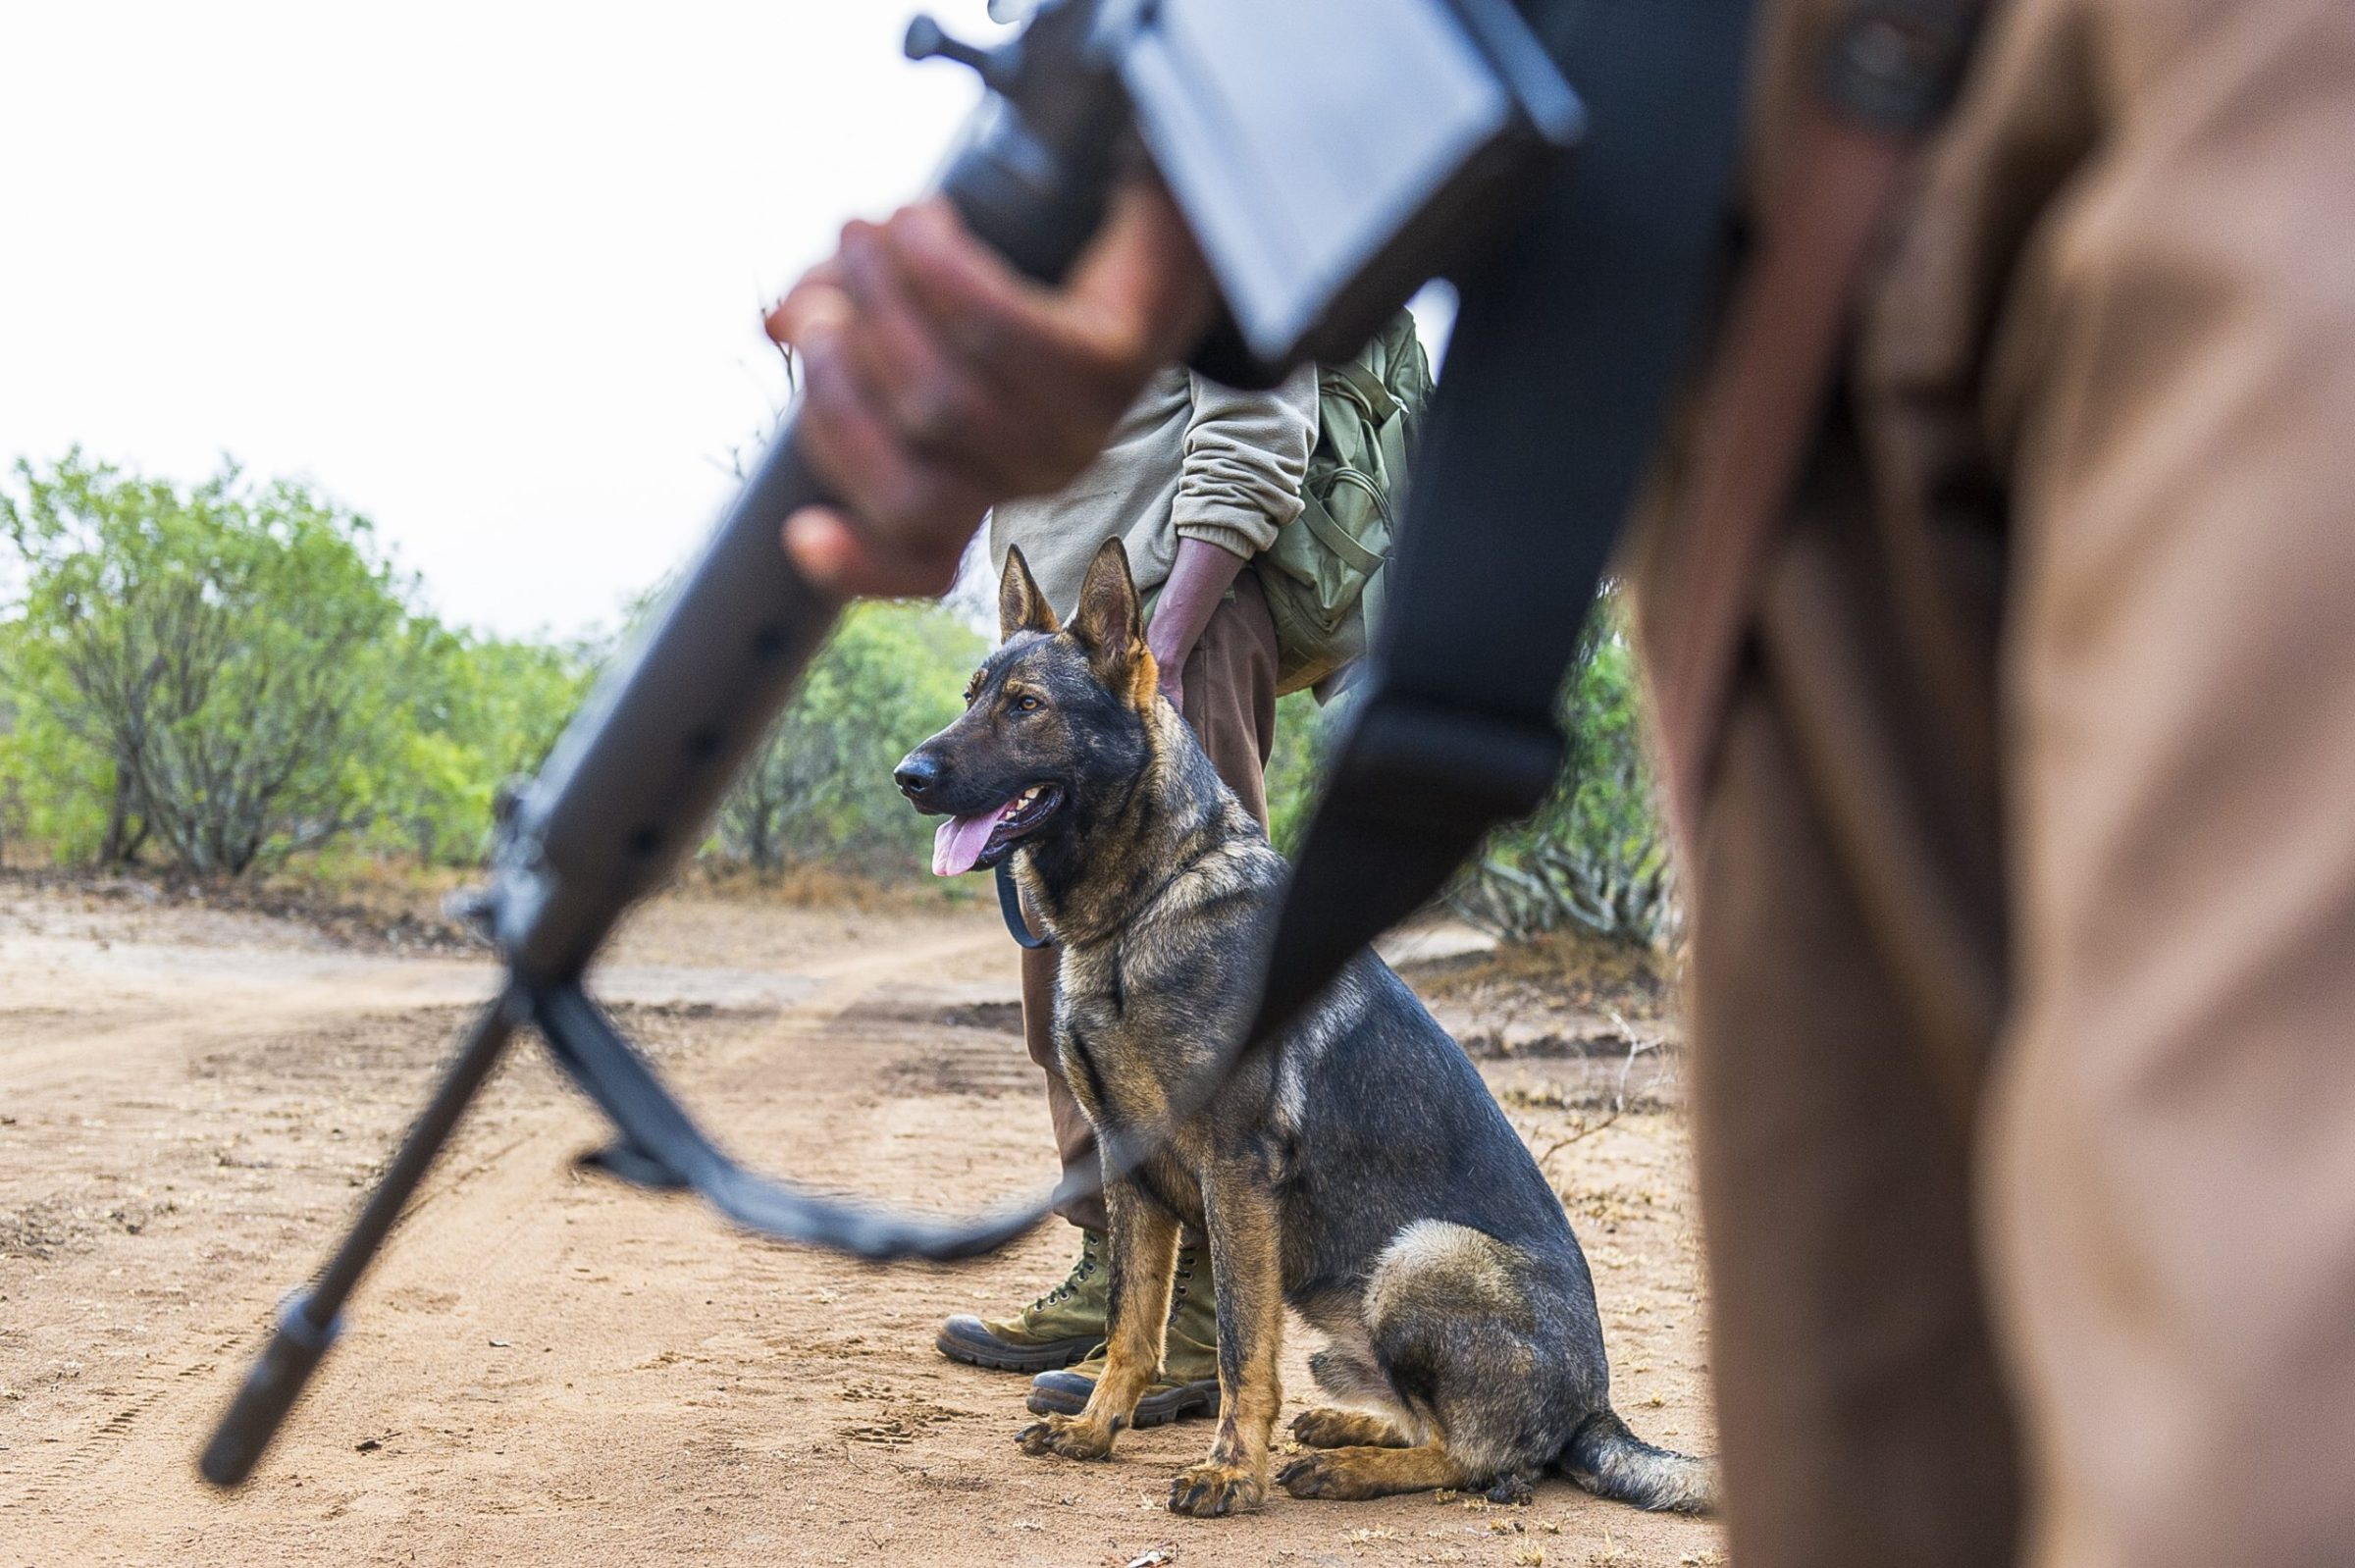 Anti-poaching patrols use dogs to find and capture poachers.